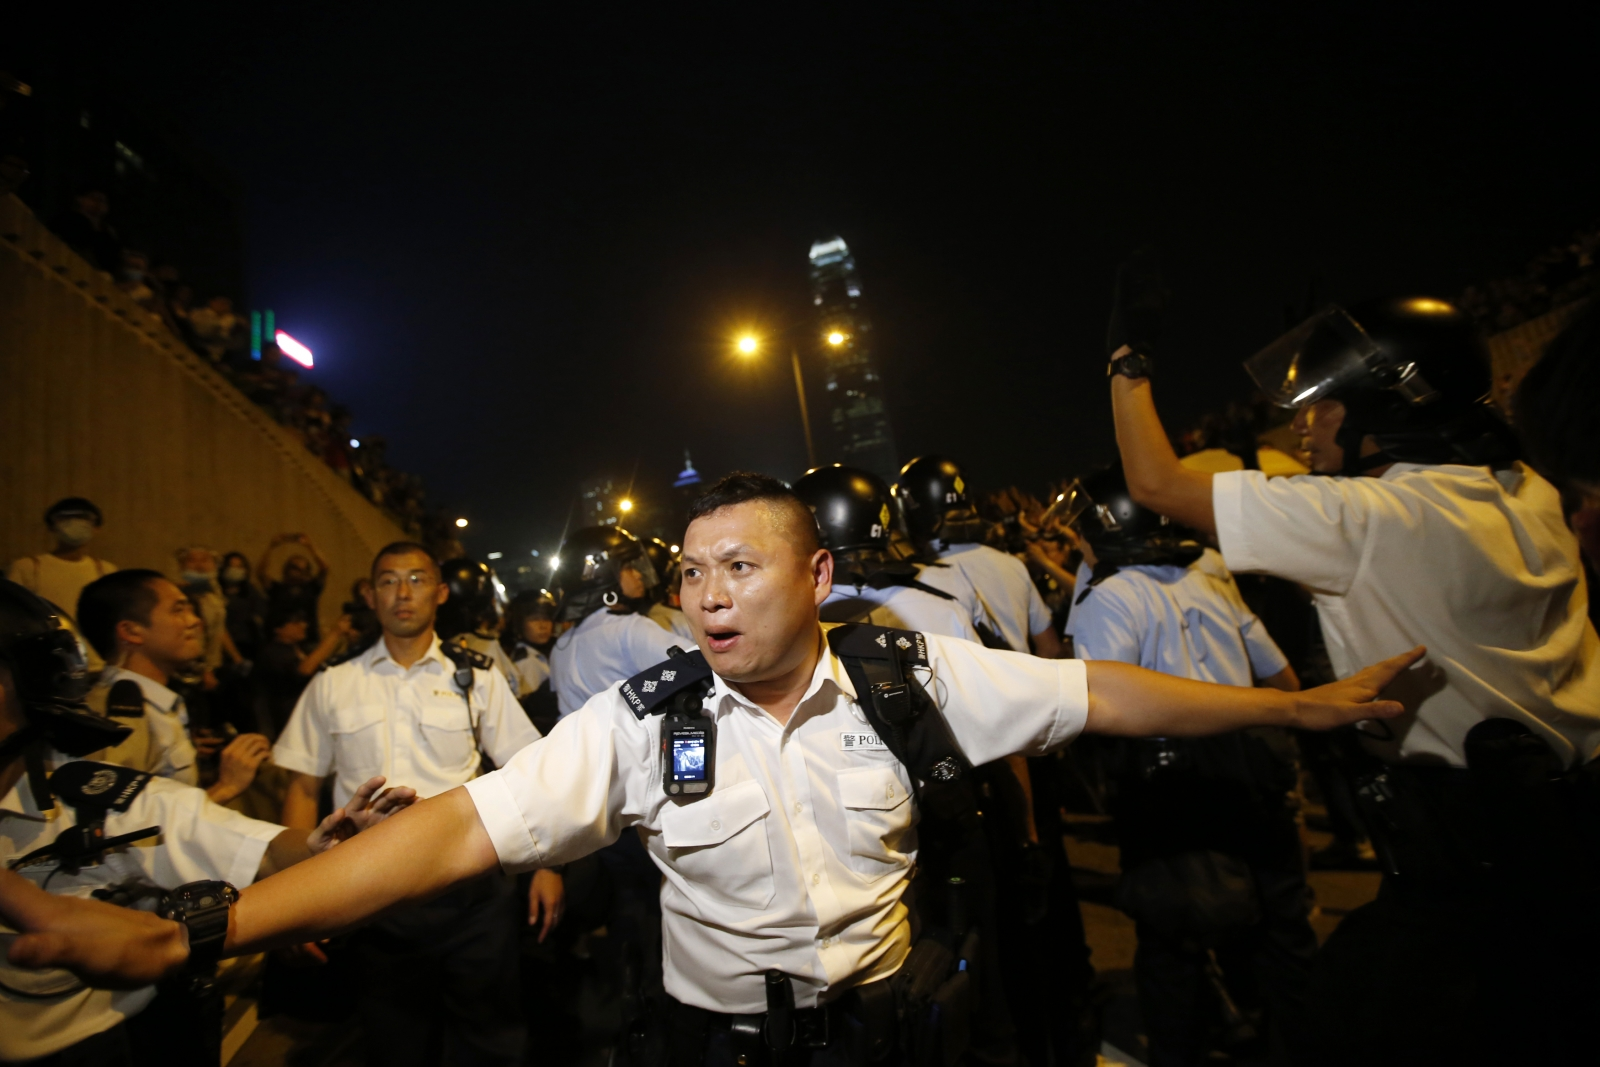 Police officers wielding pepper spray tore down barricades and concrete slabs built up by pro-democracy demonstrators